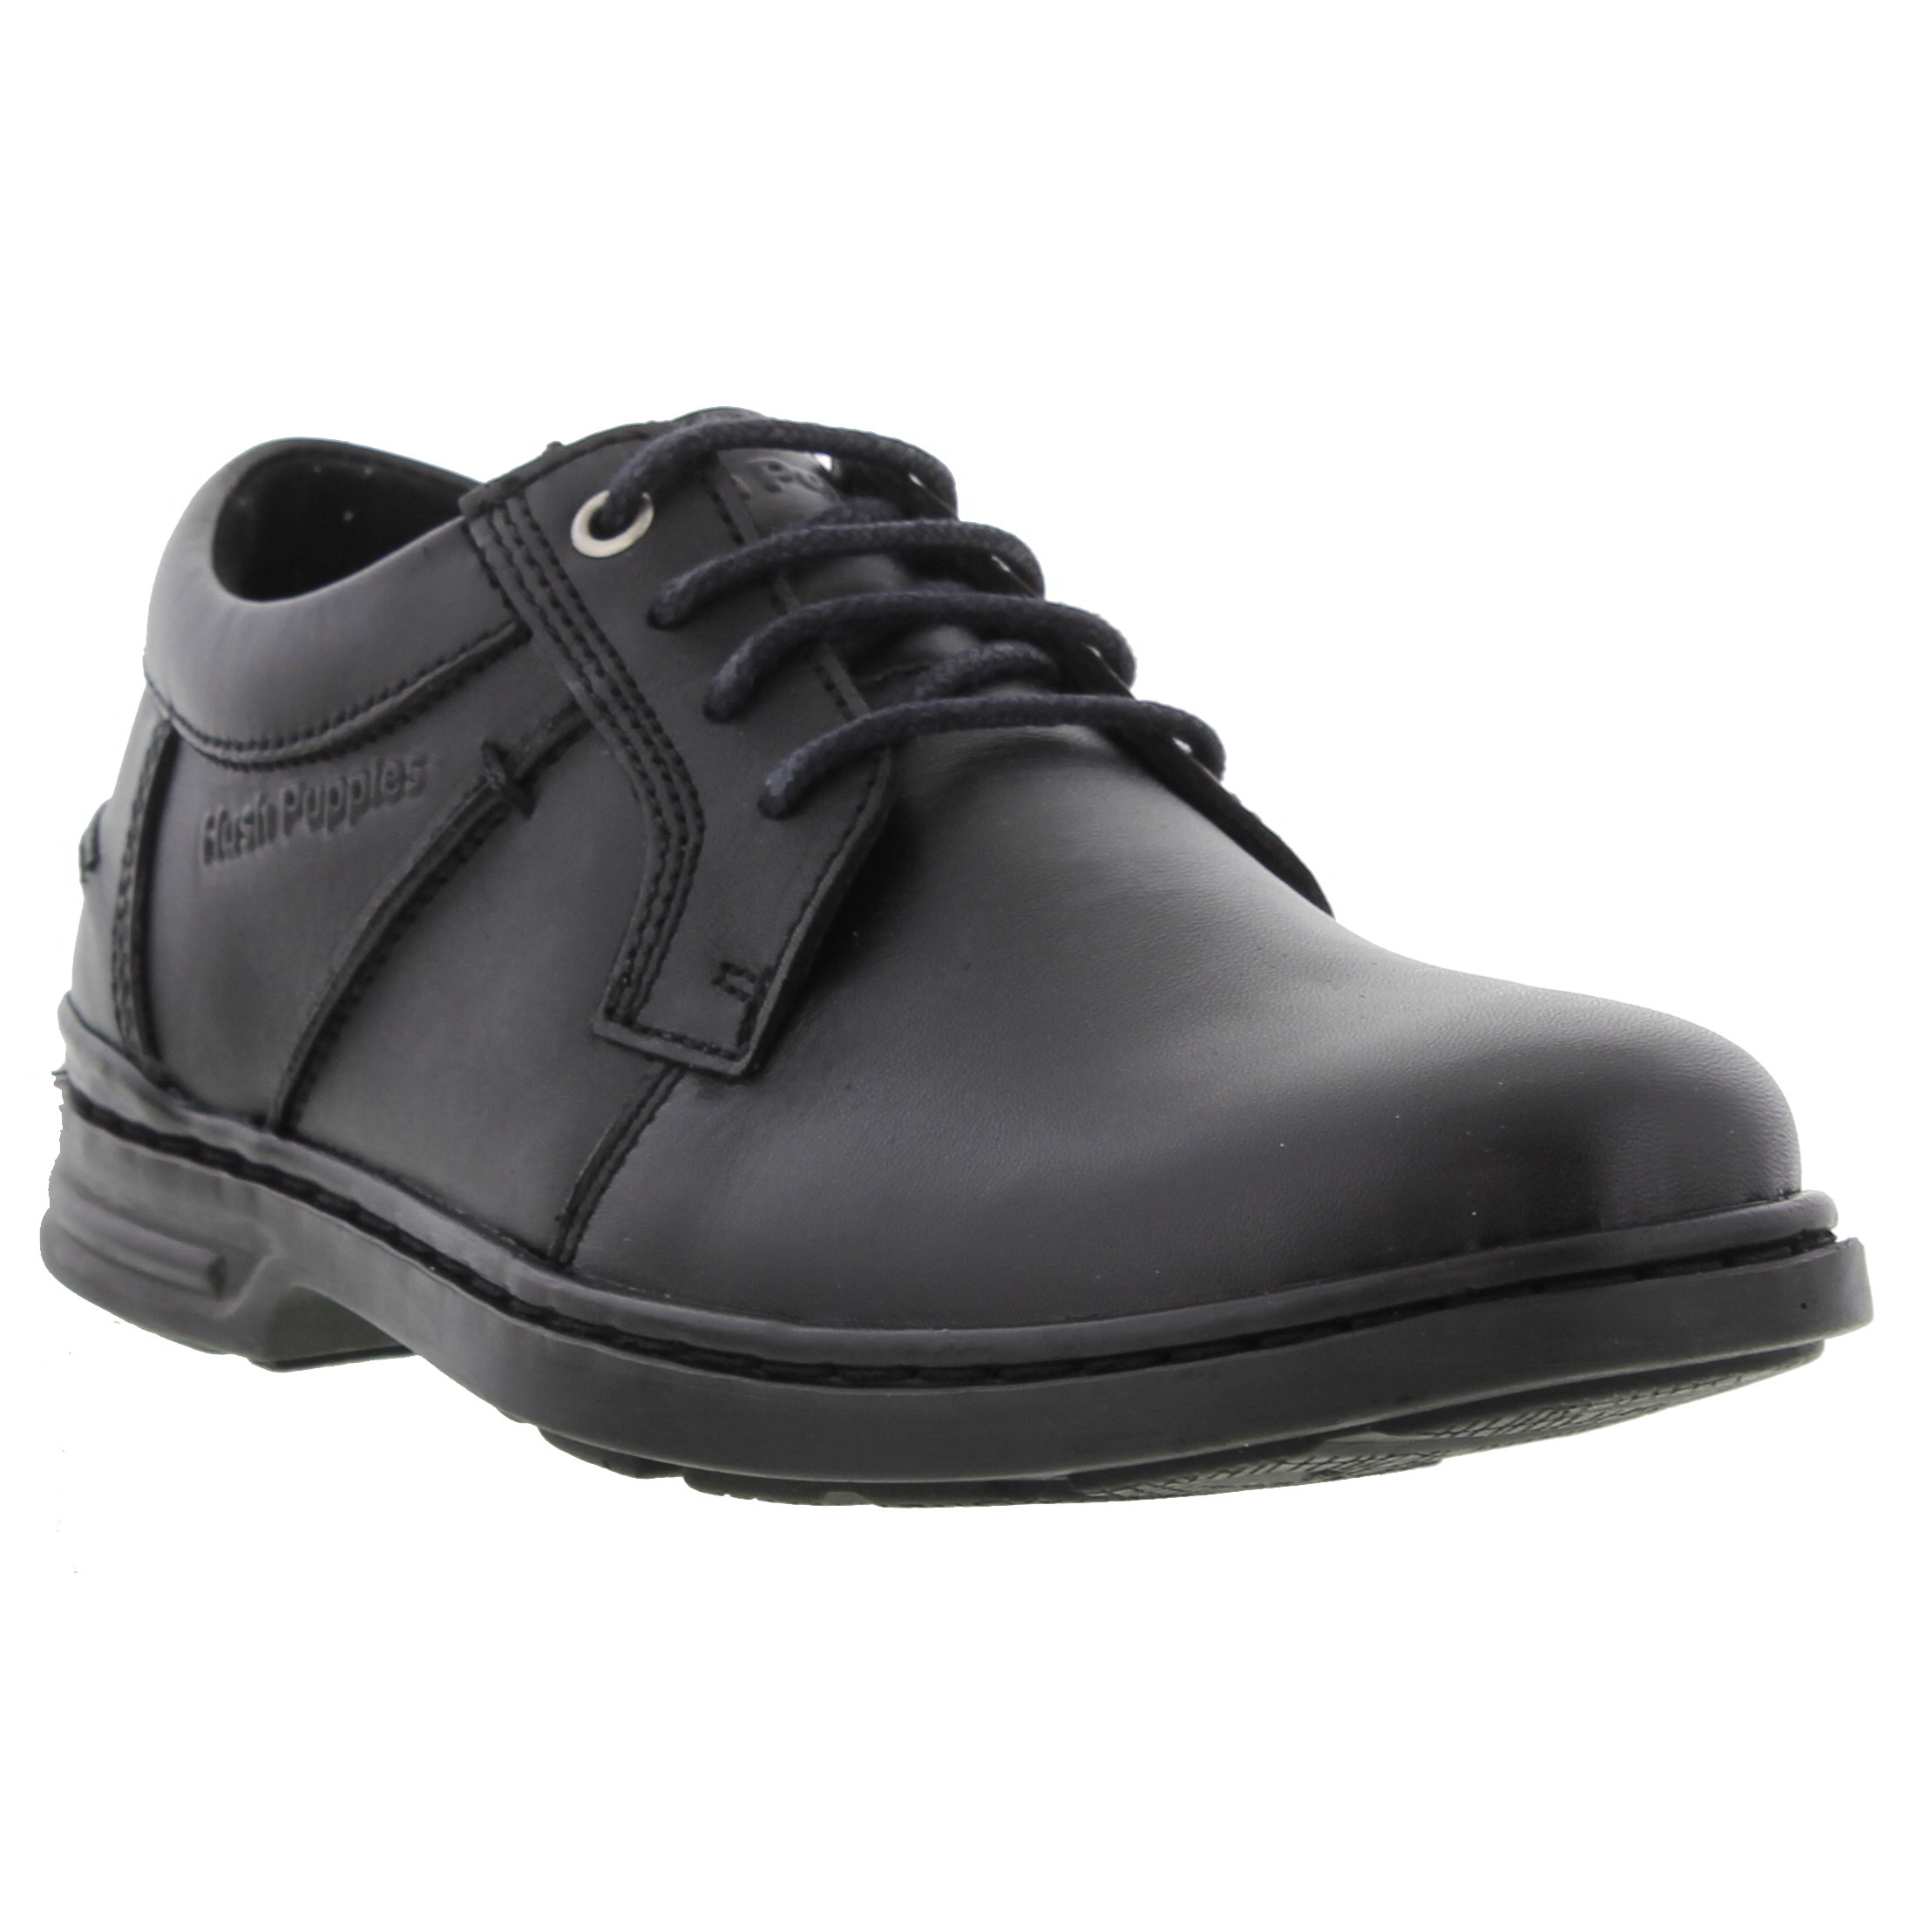 hanston men Men's hush puppies hanston roadside sneaker with free shipping & exchanges whether you're in the office or on the town, the hanston roadside sneaker.